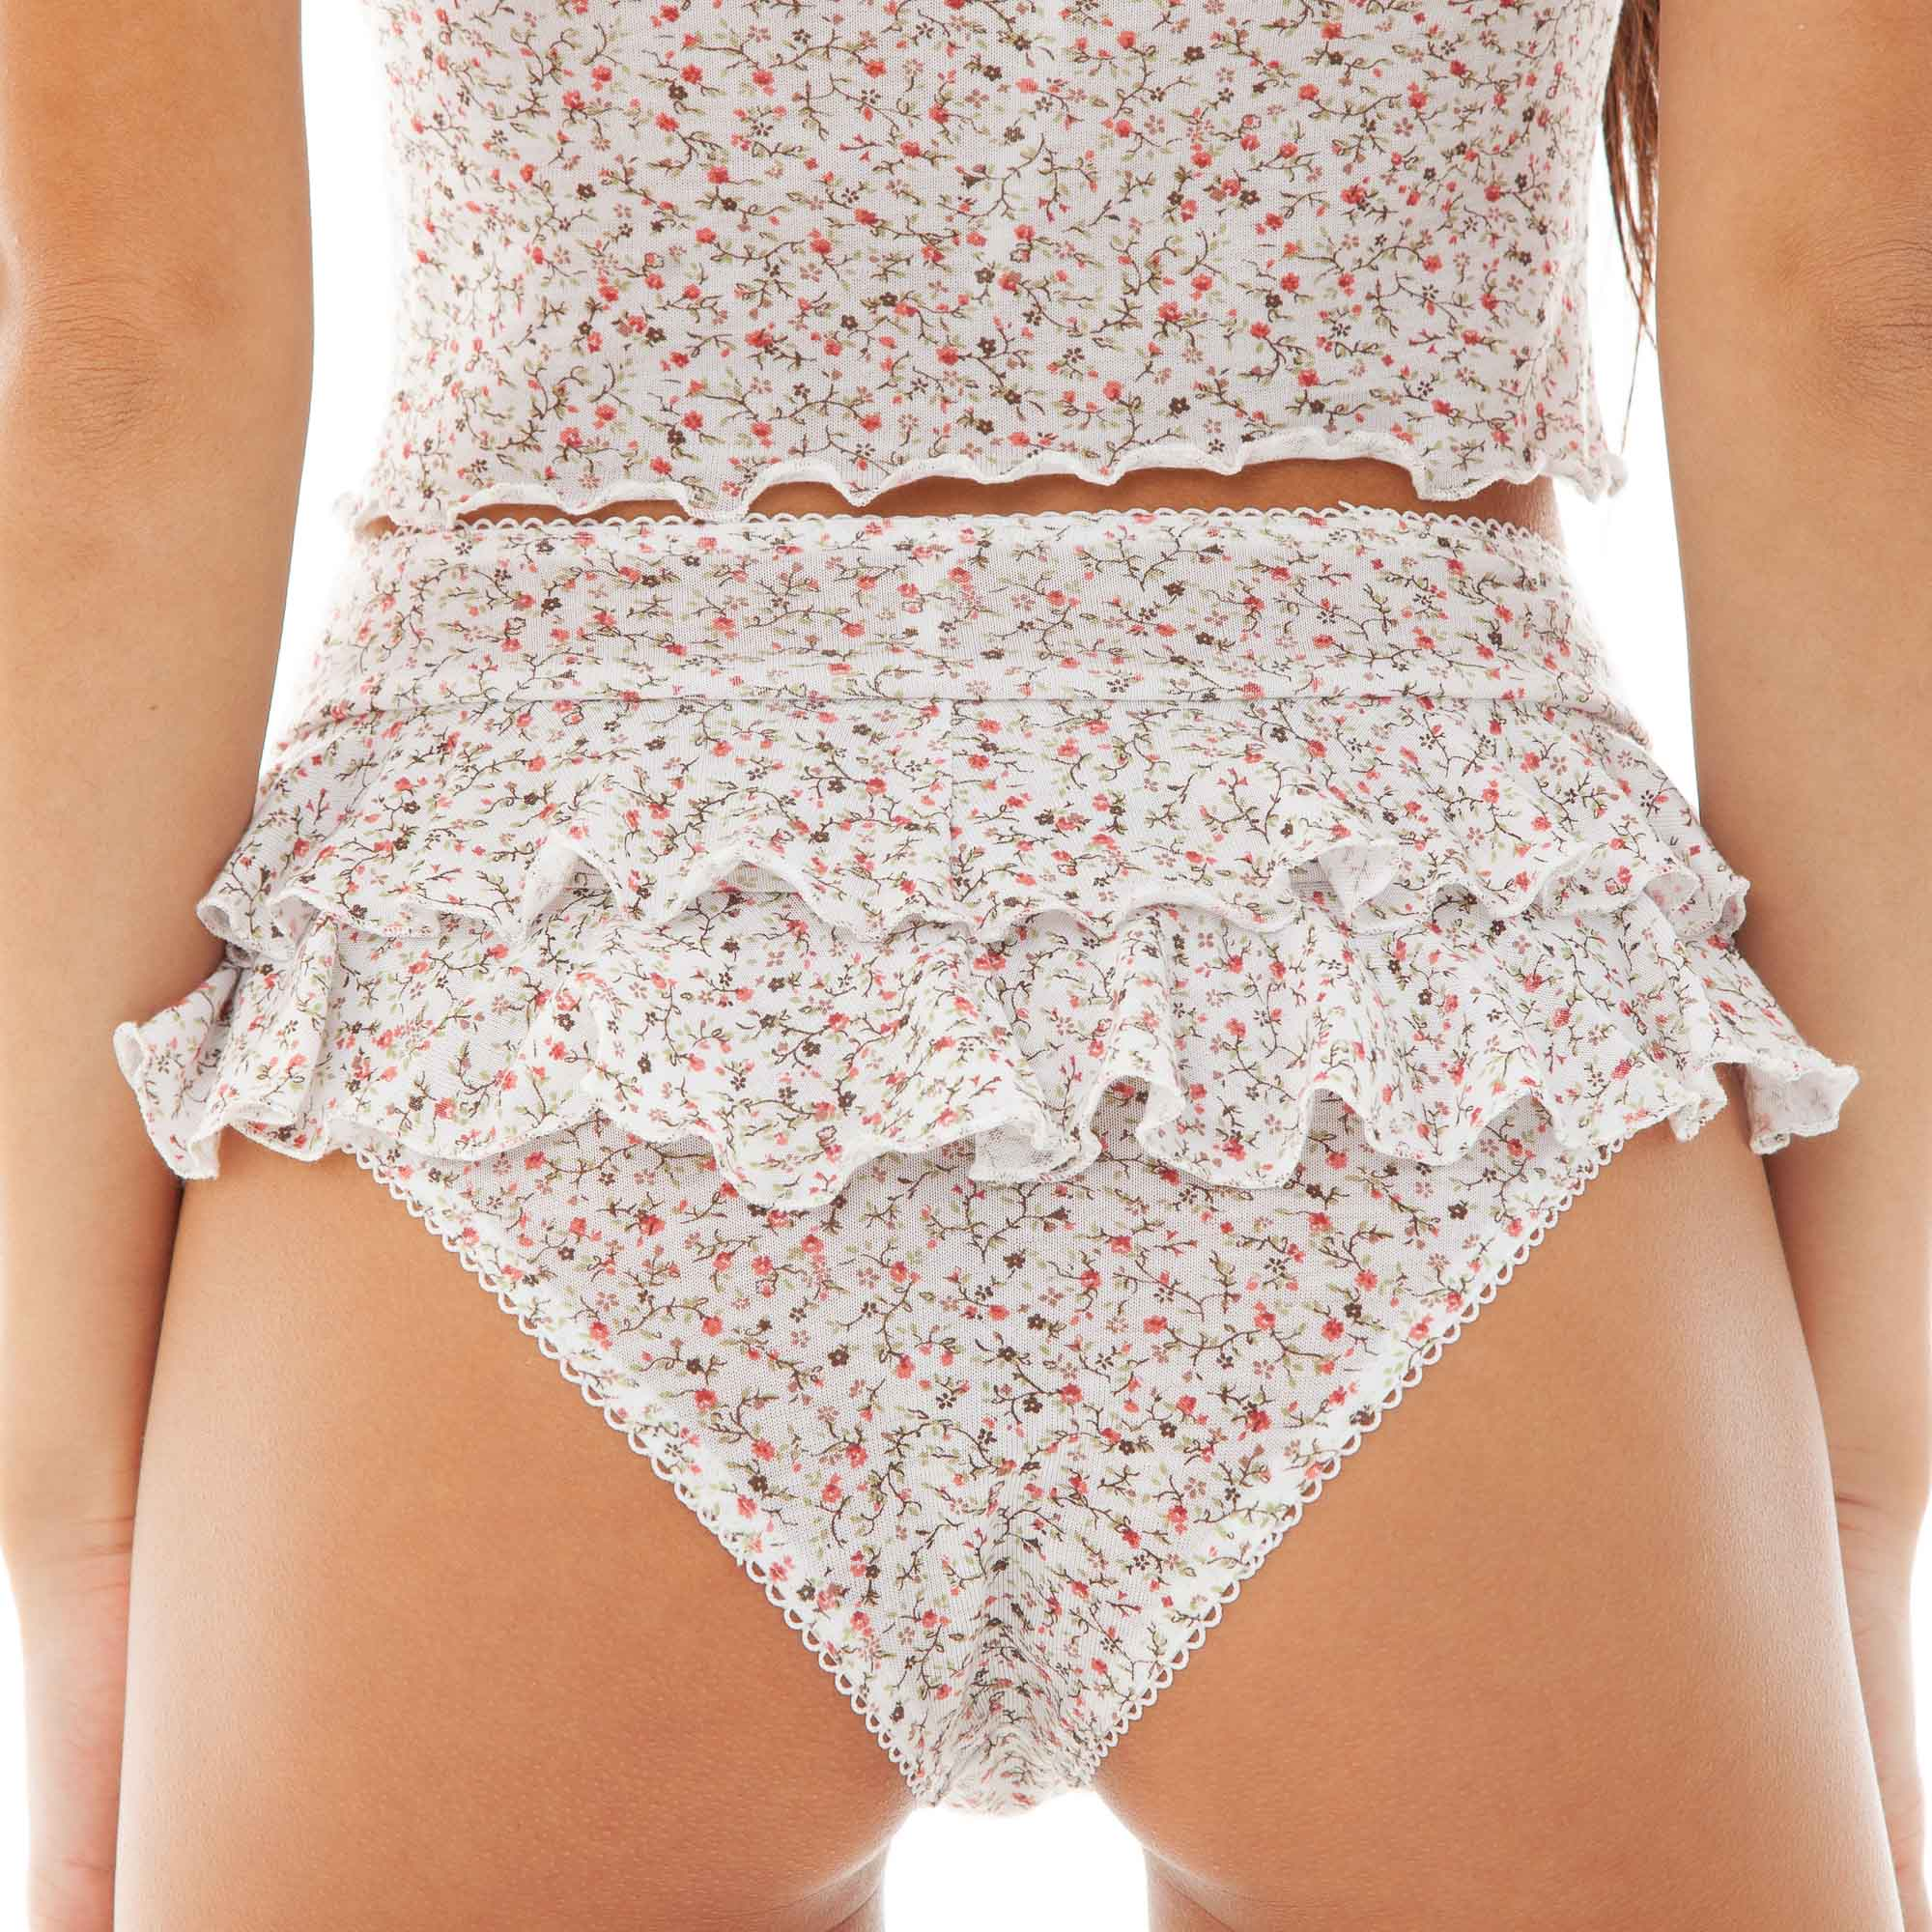 Are You Am I - Lux Floral Boyshort